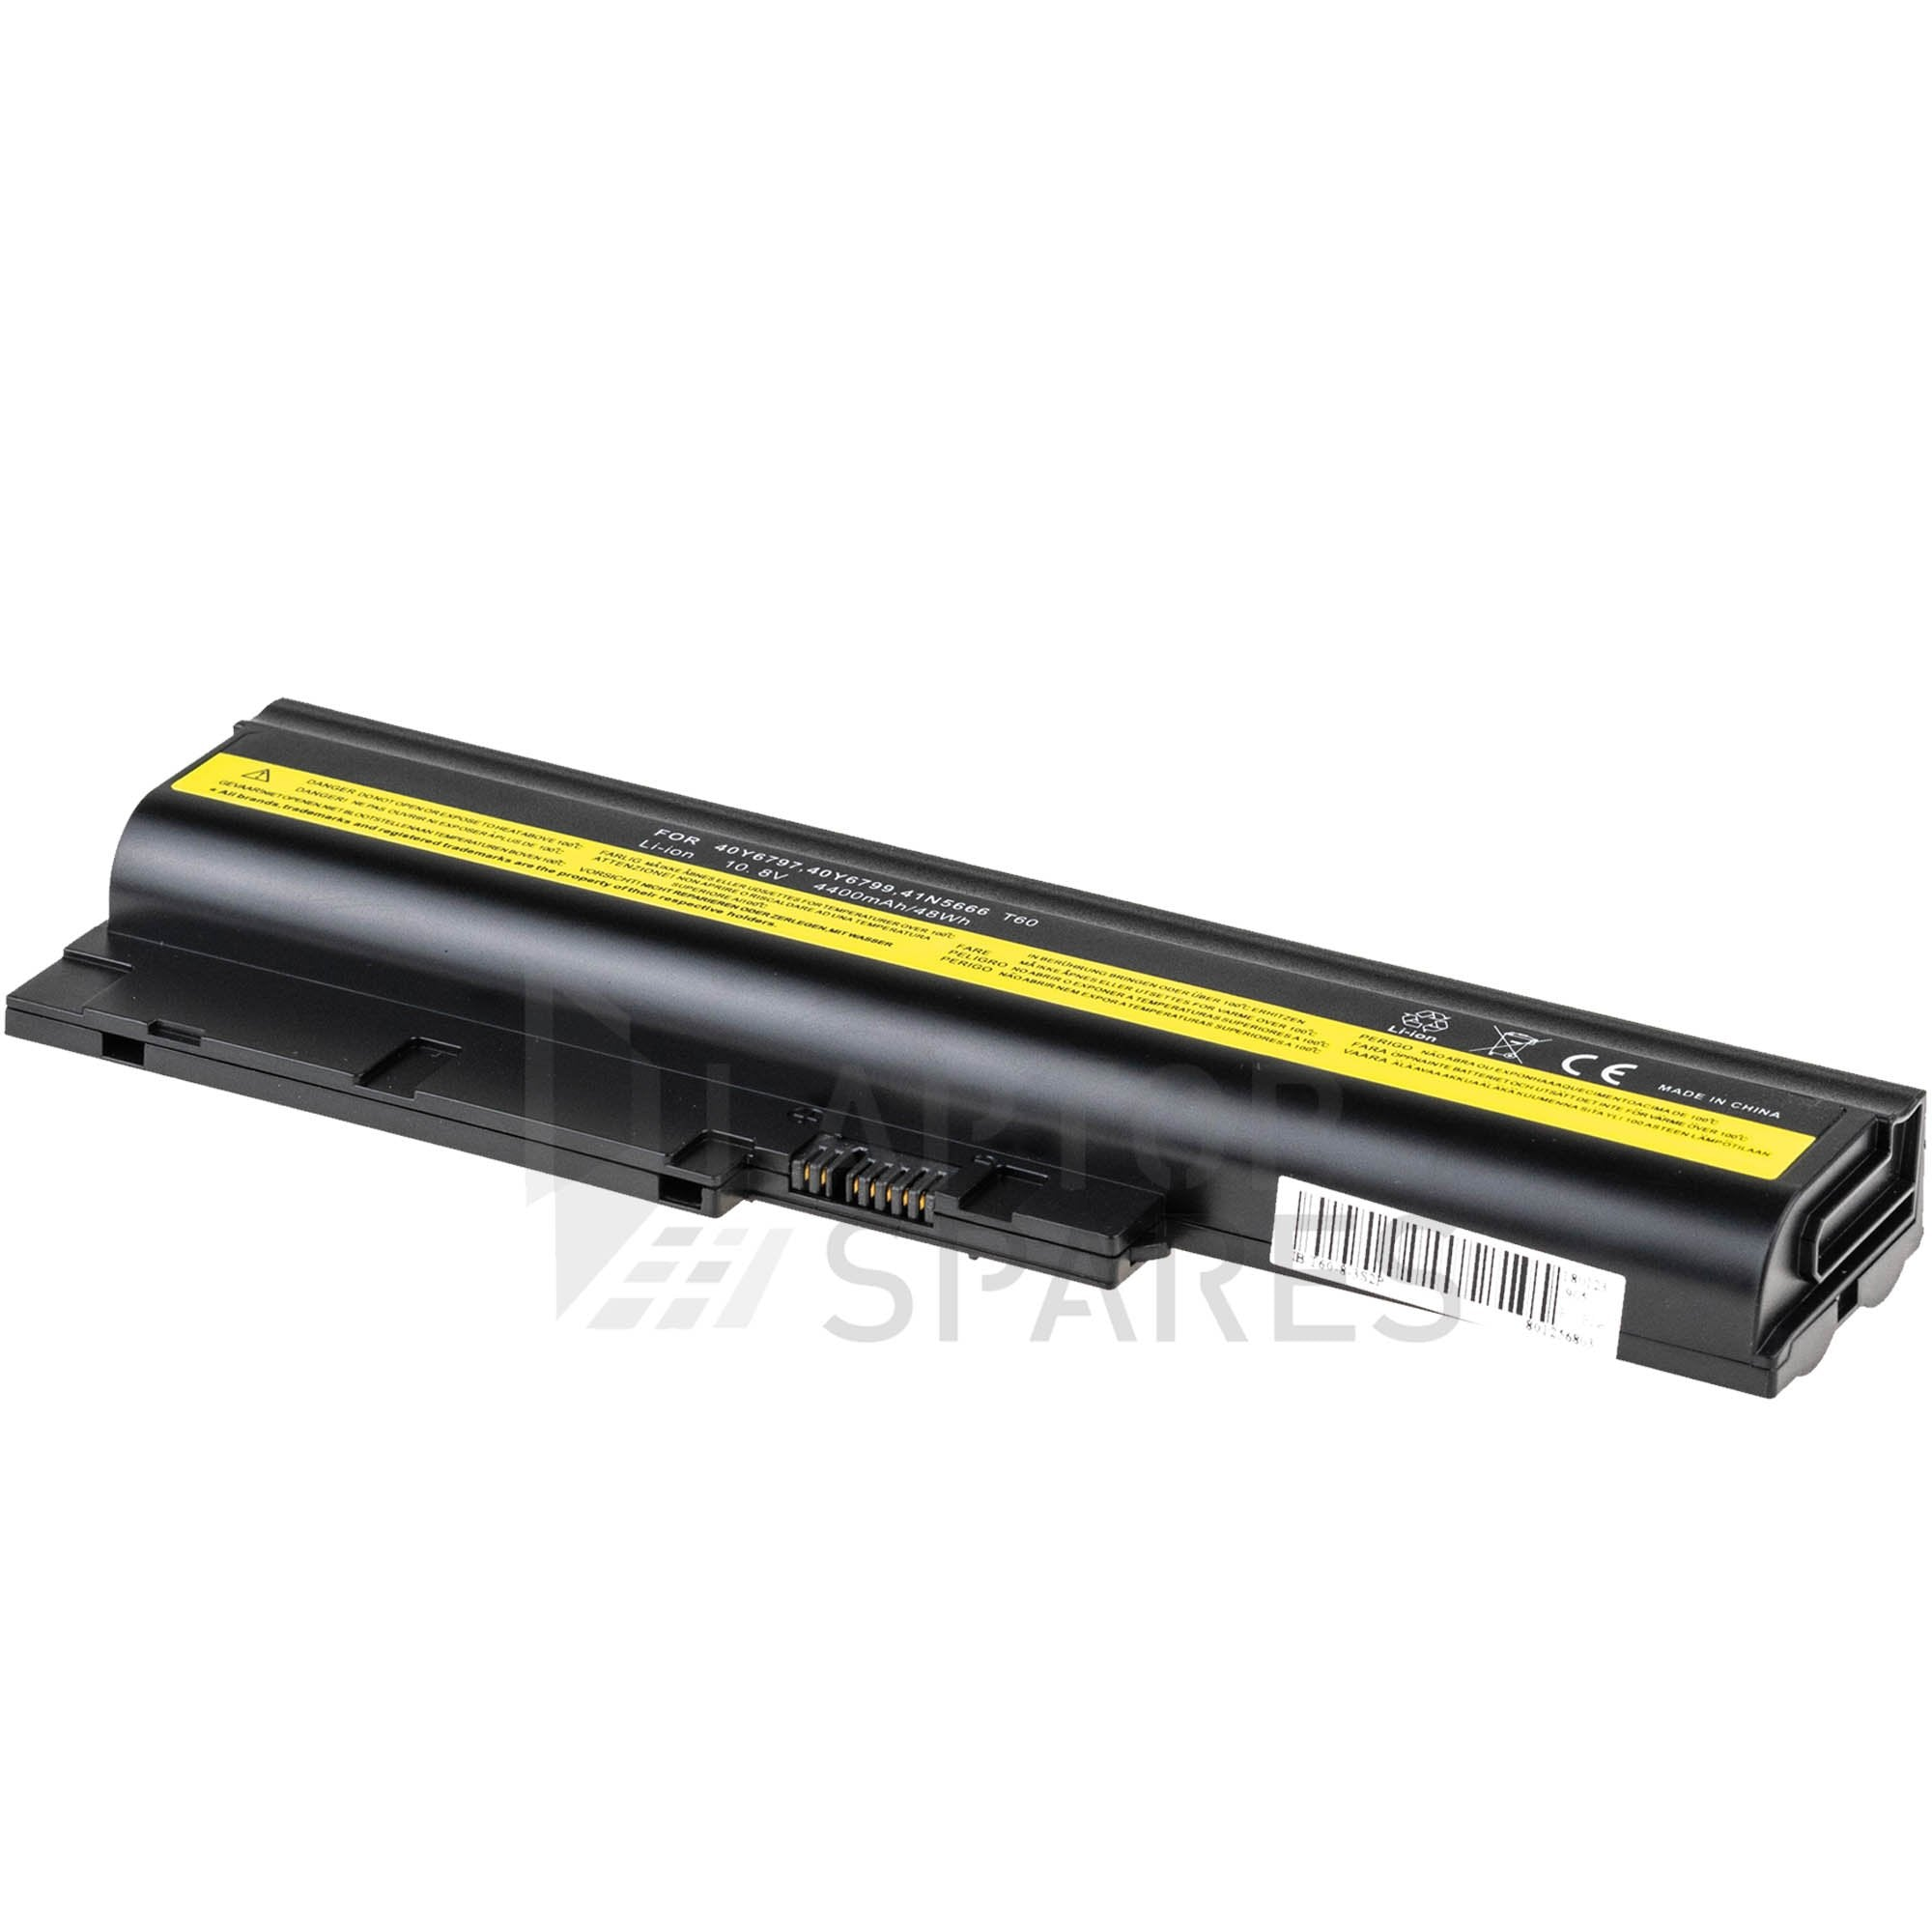 Lenovo ThinkPad R61e 7649 7650 4400mAh 6 Cell Battery